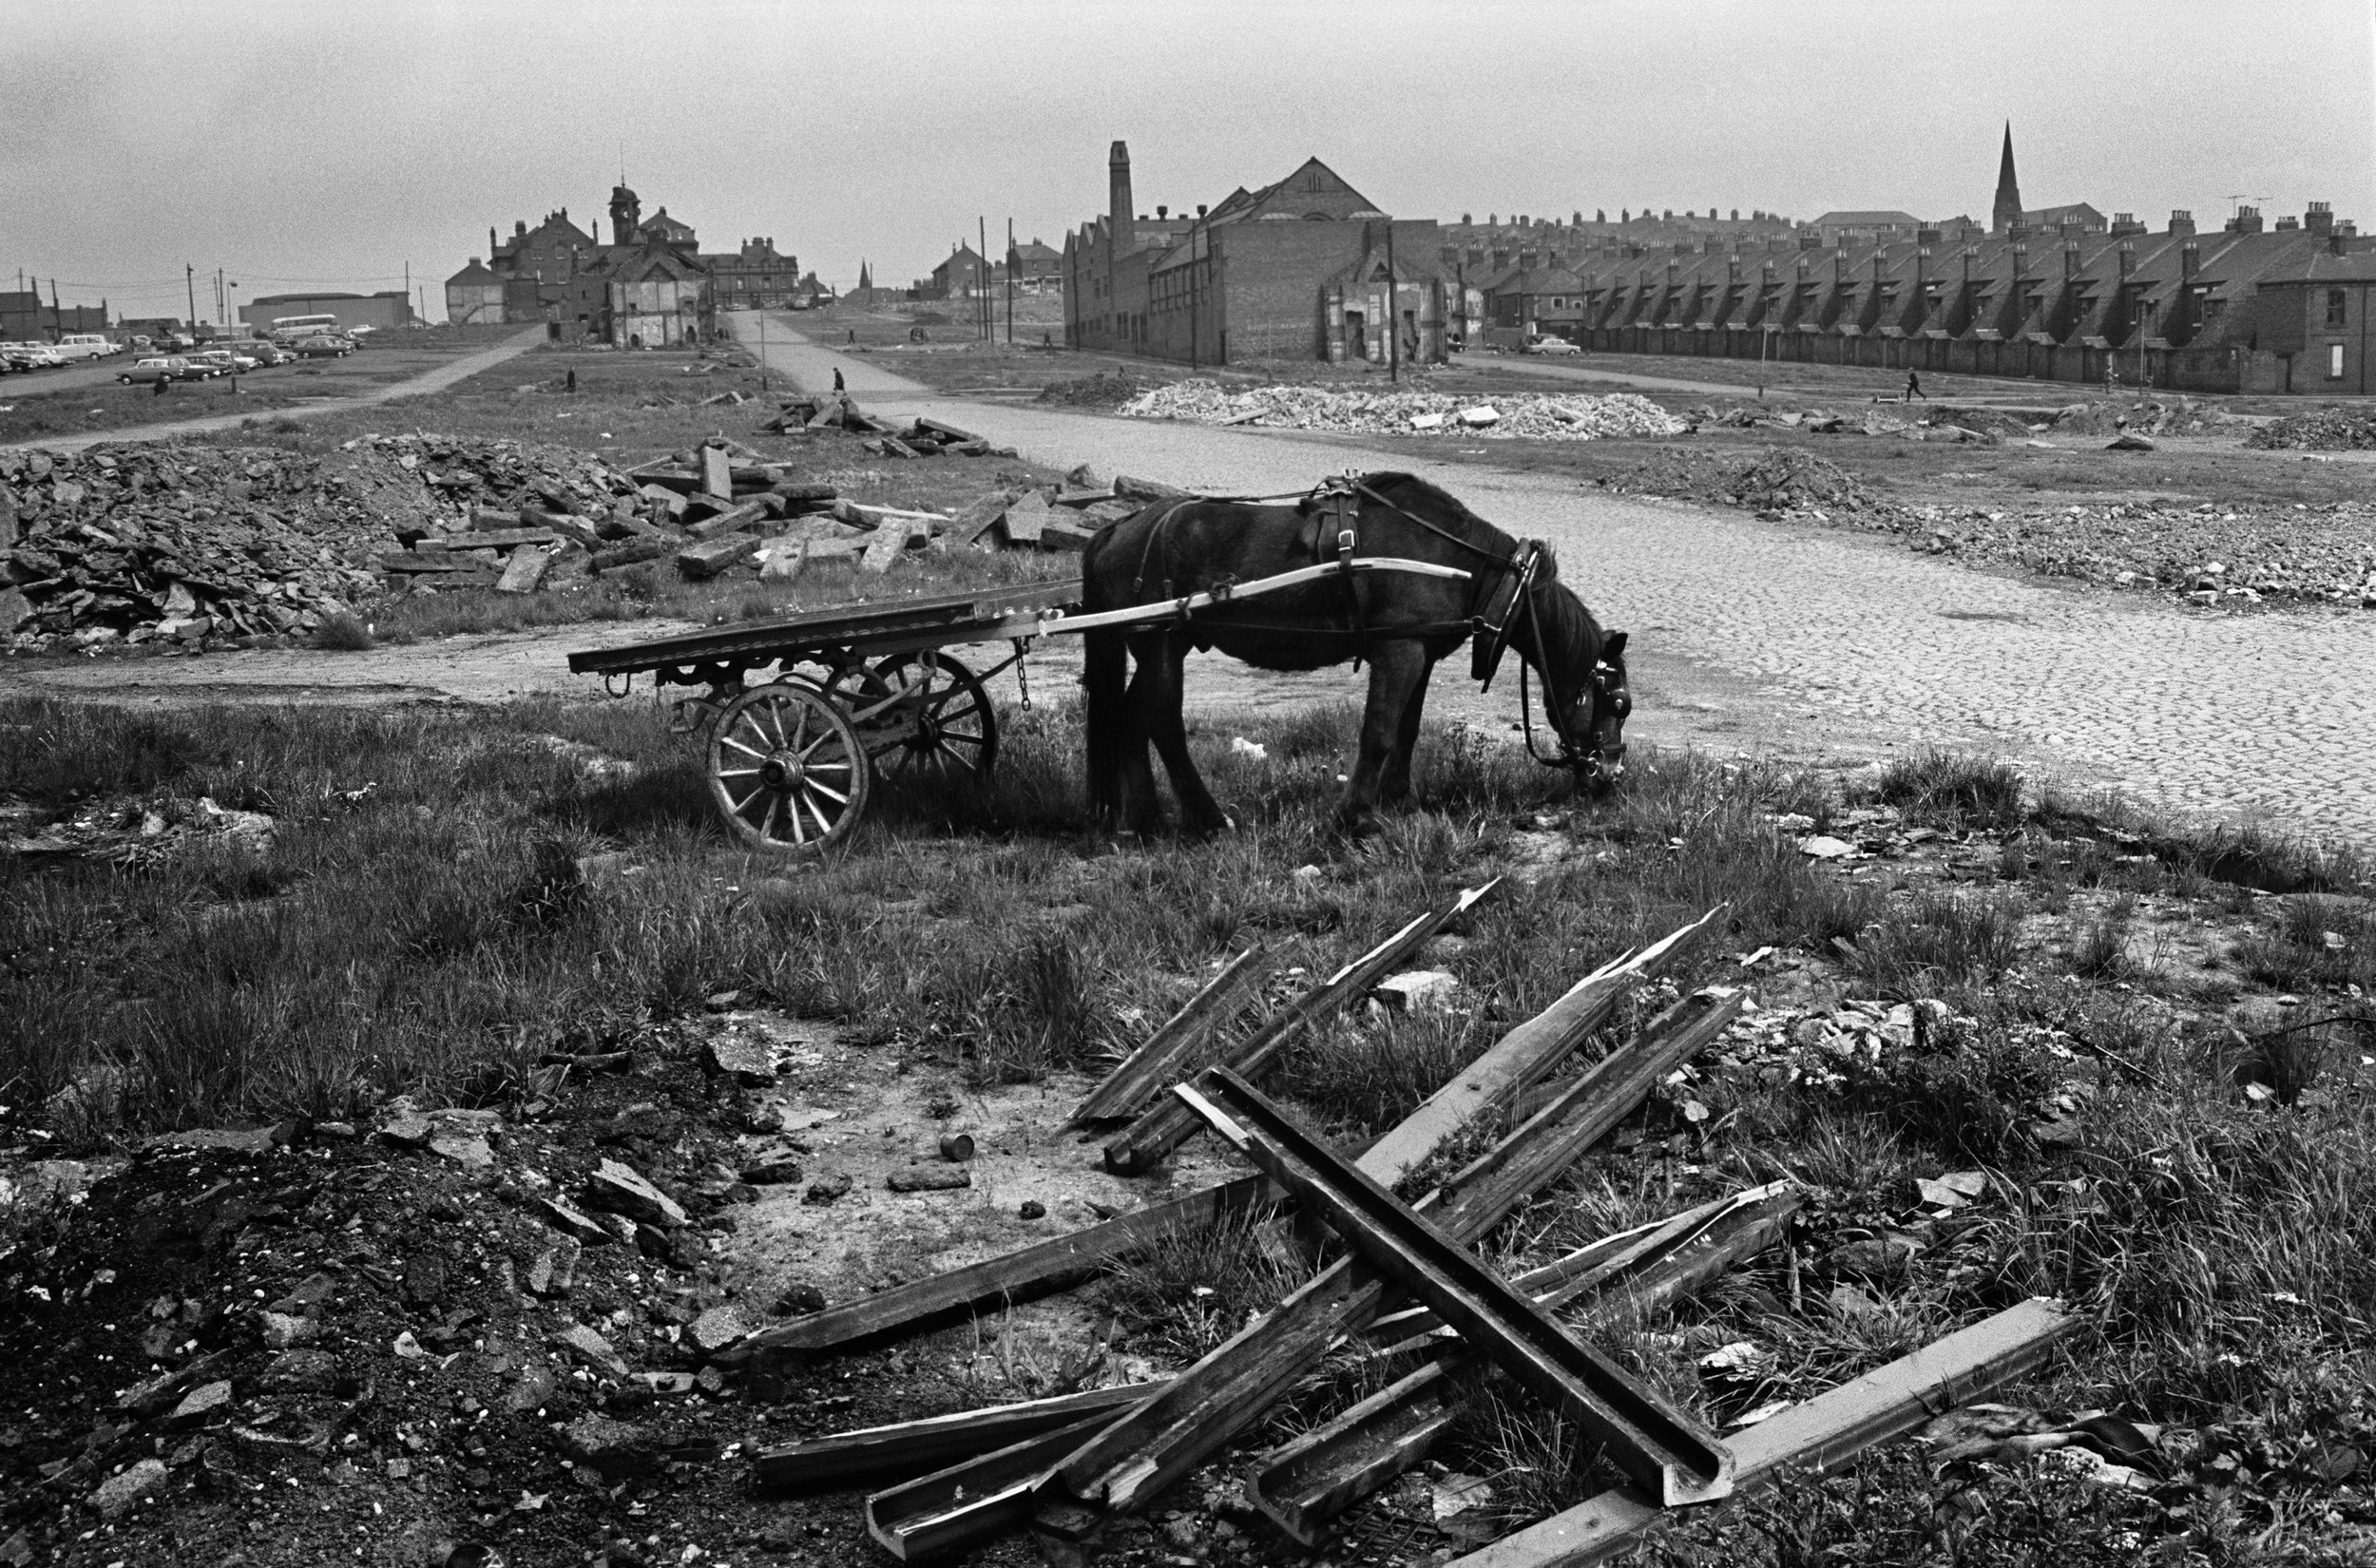 Ragman's Horse and Cart by Union Road, 1970